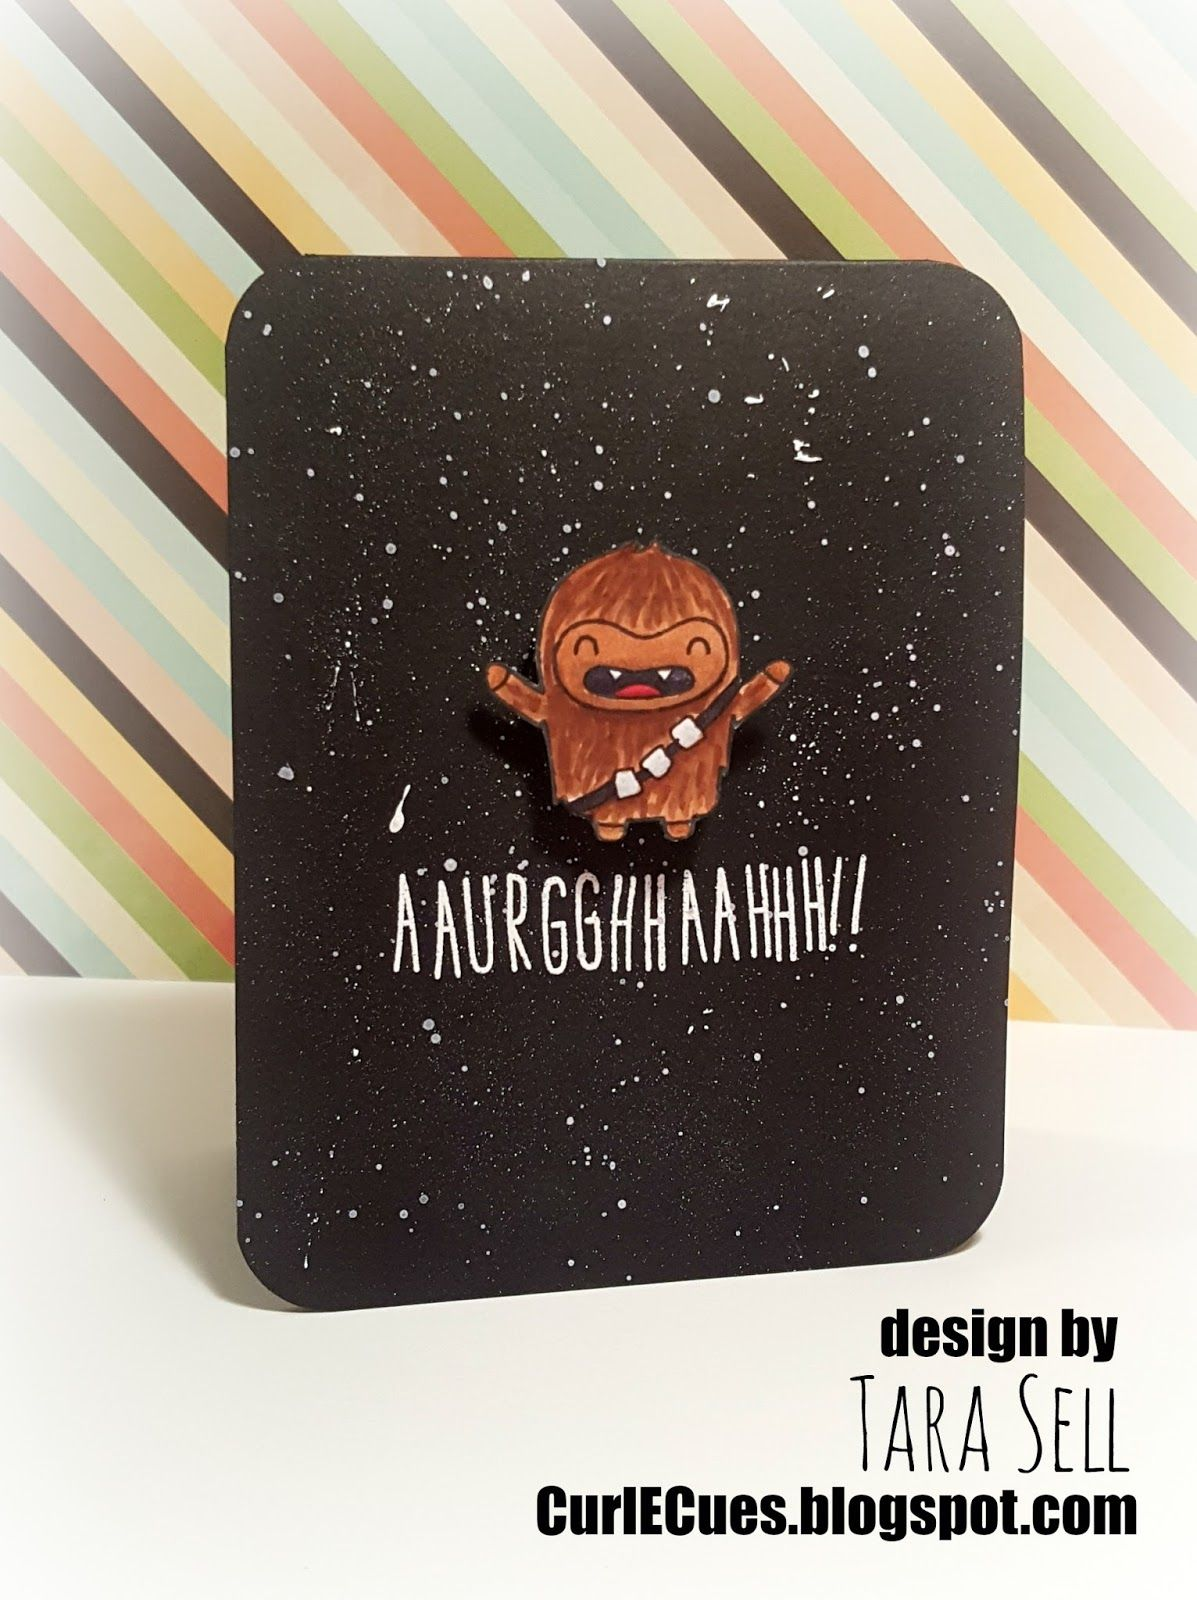 Curl e cues video star wars chewbacca action wobble card i am super excited about tonights card this was a special custom made card for my hubbys birthday now hubs is a huge star bookmarktalkfo Choice Image